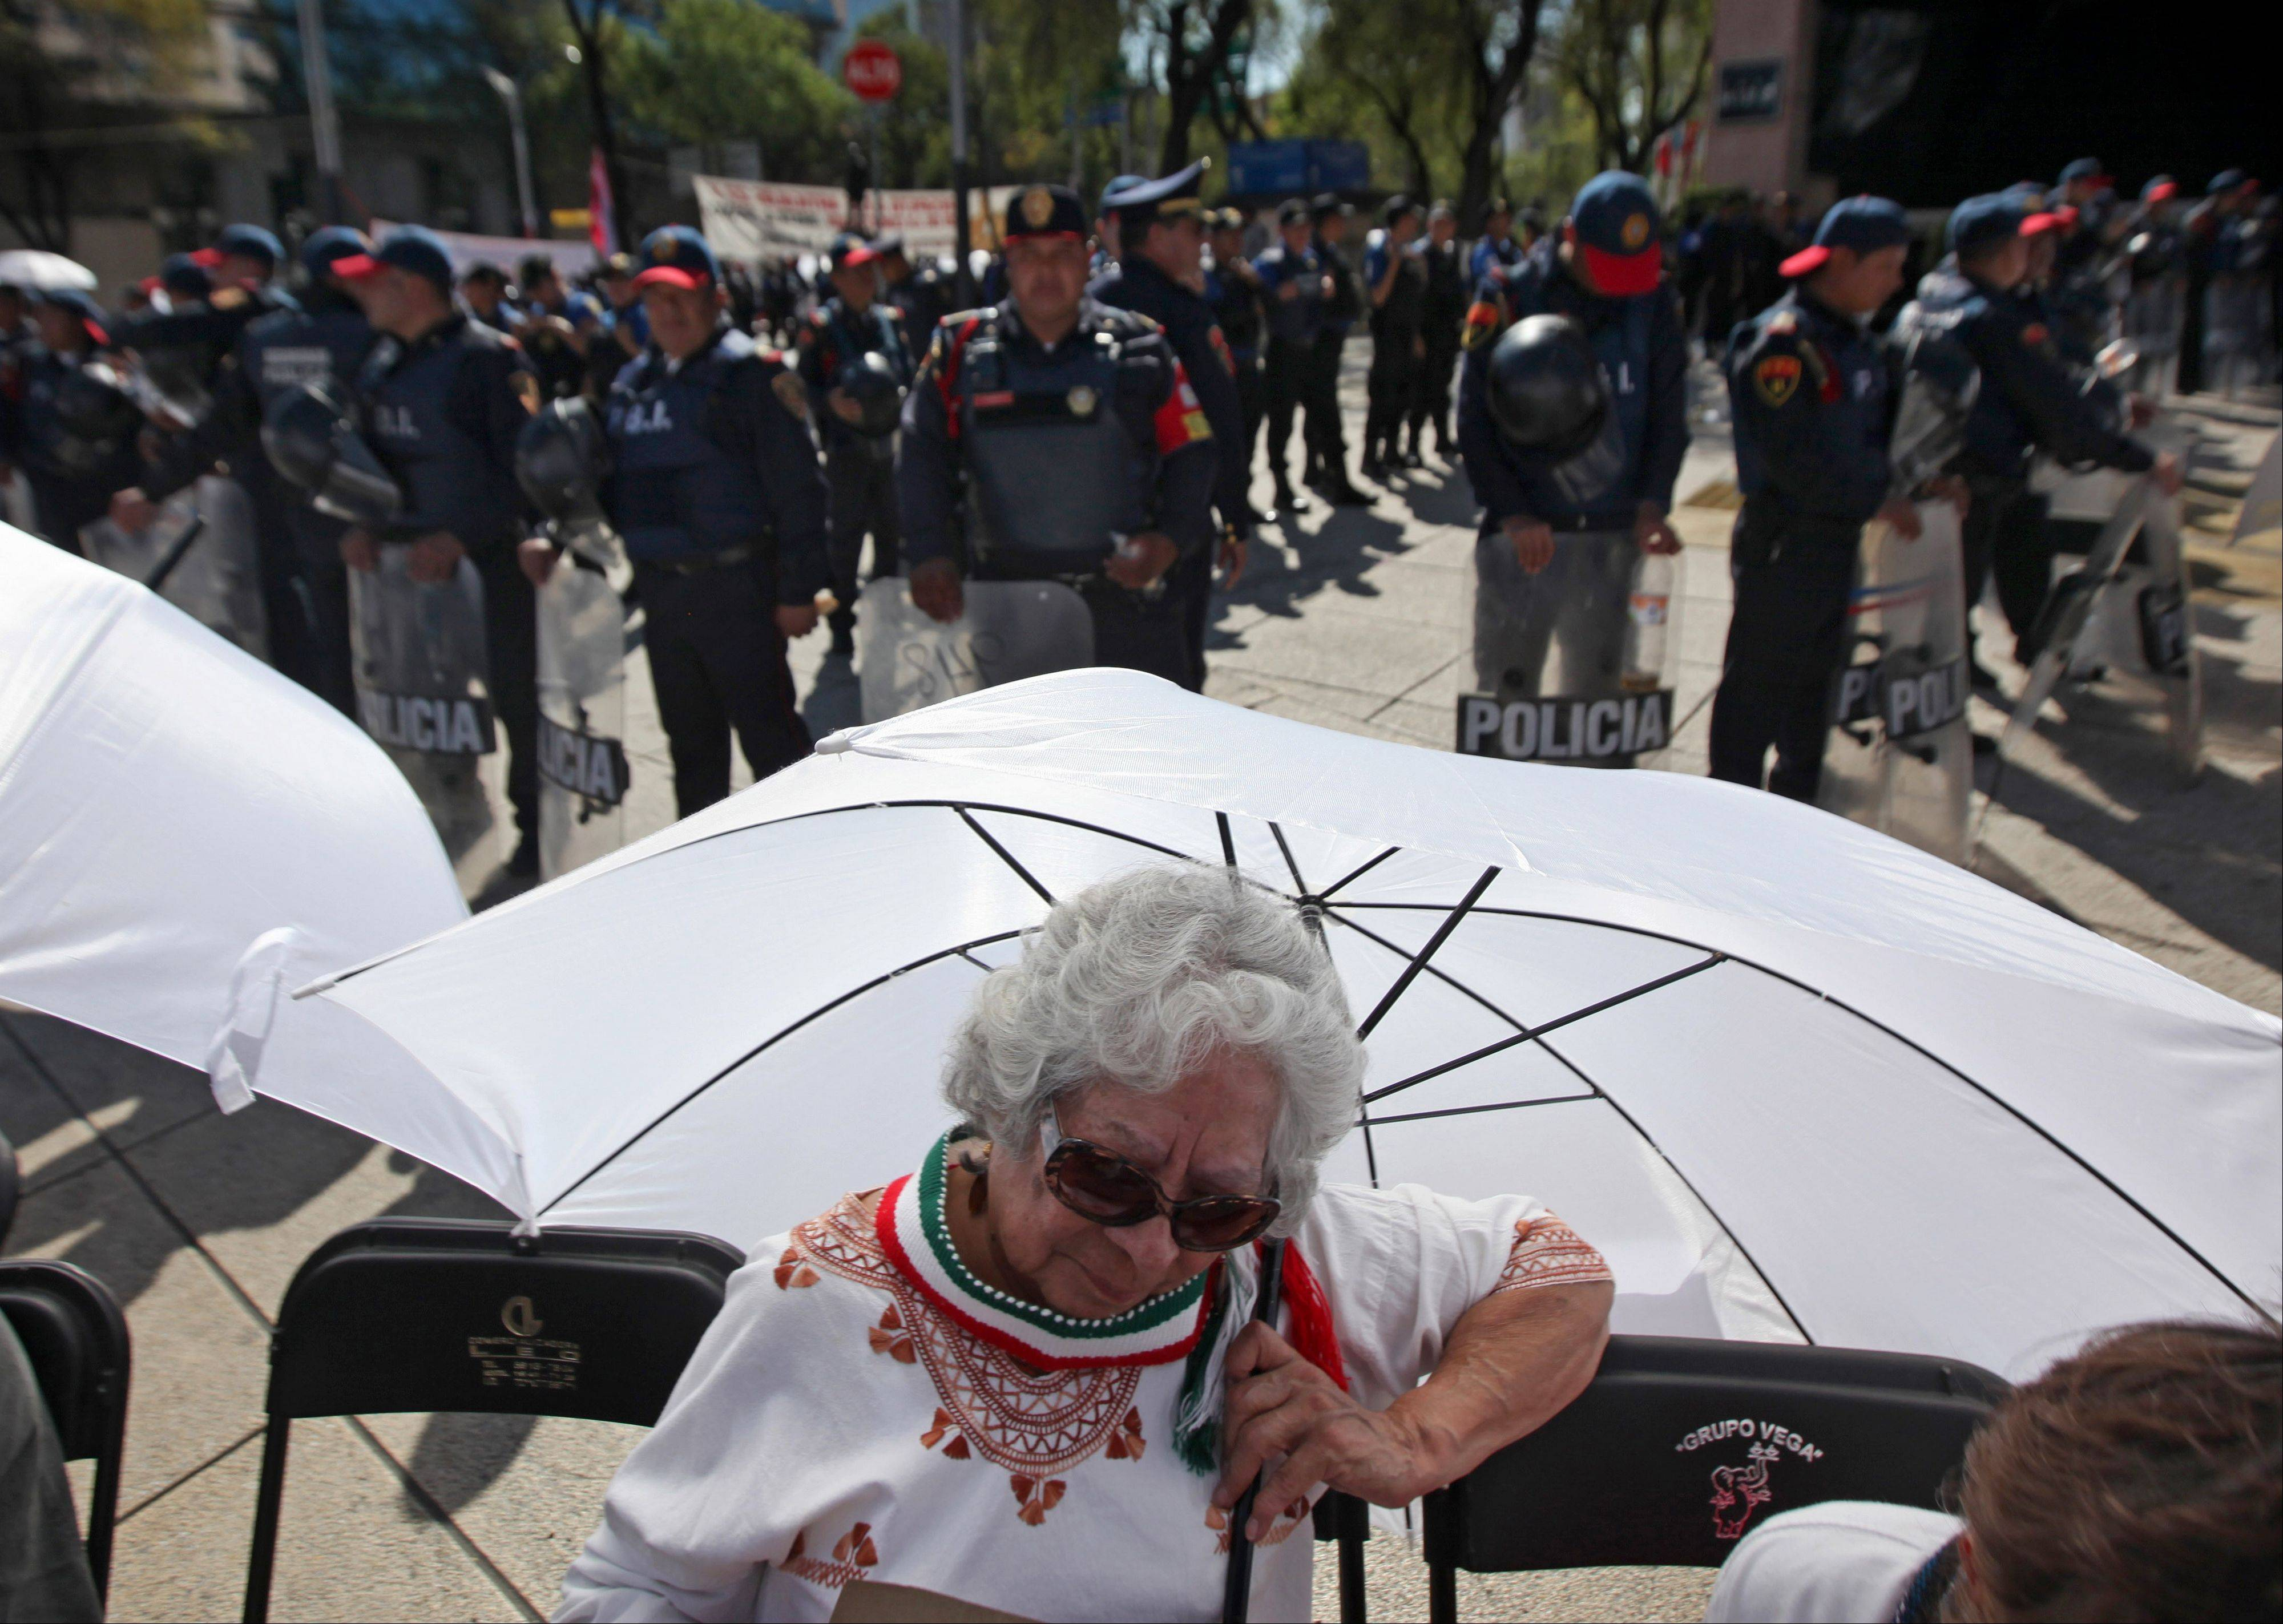 A protester sits under an umbrella Saturday in front of riot police outside the Mexican Senate building in Mexico City.